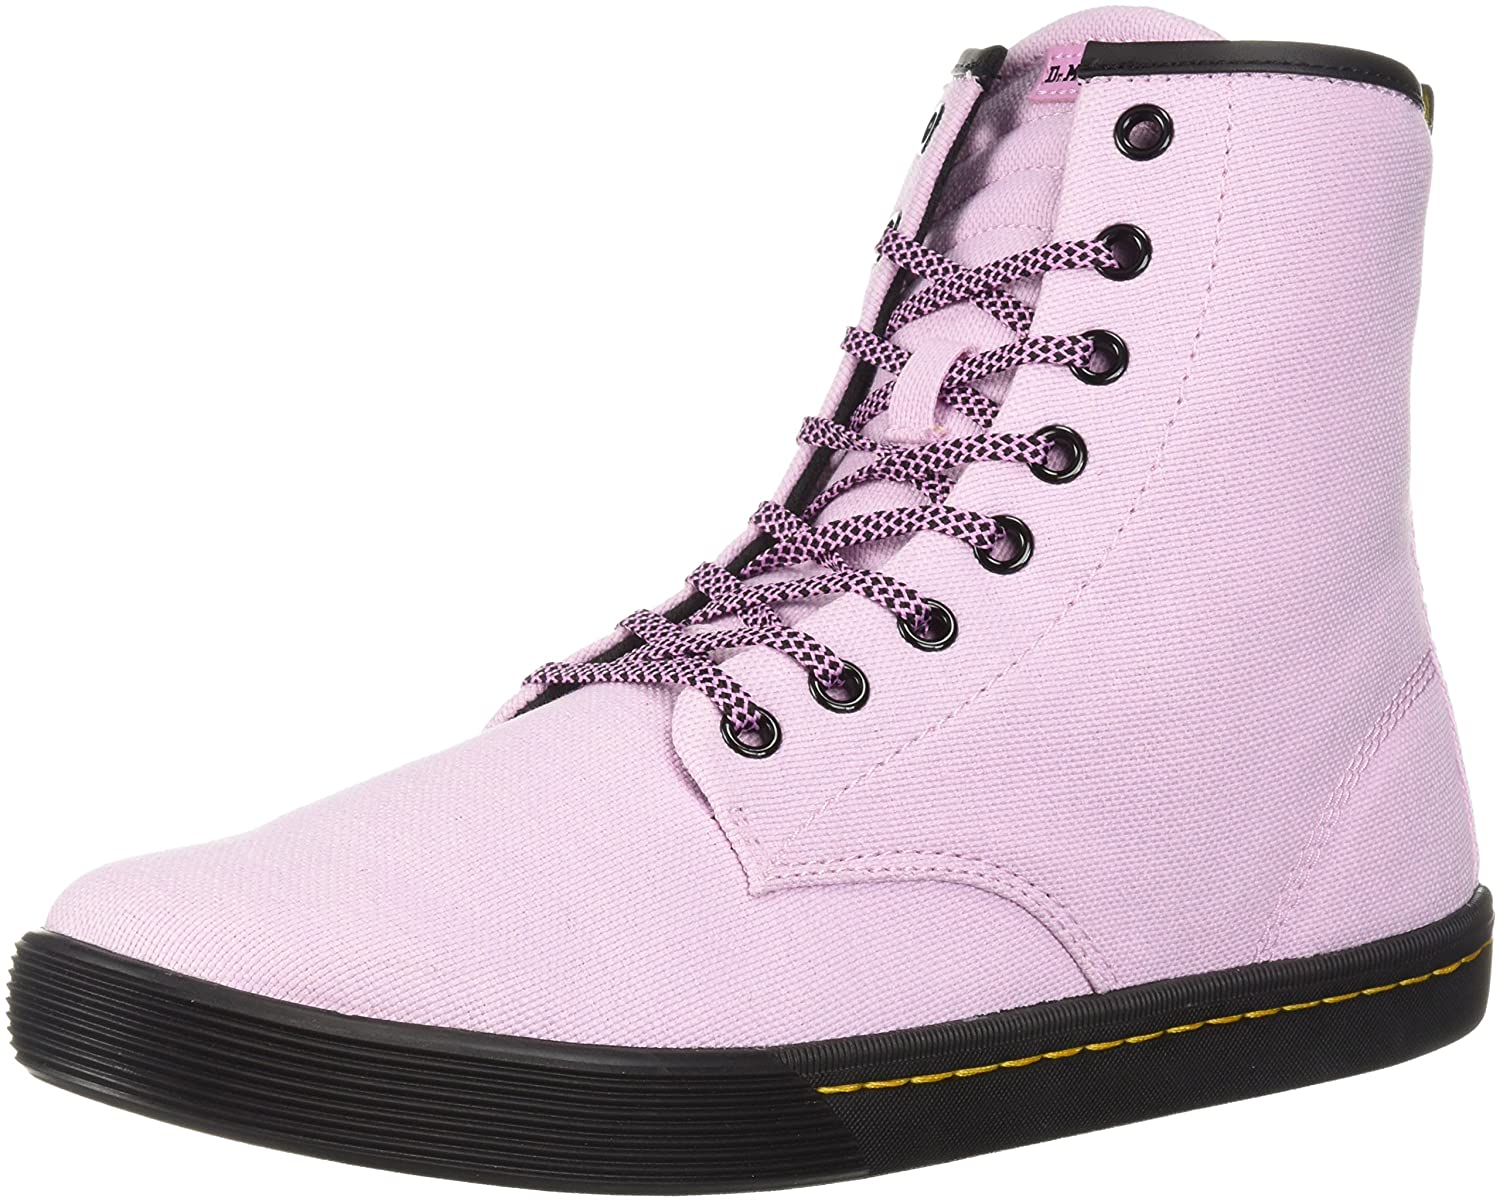 Dr. Martens Women's Sheridan Fashion Boot B071GNF1JX 6 Medium UK (8 US)|Mallow Pink Woven Textile